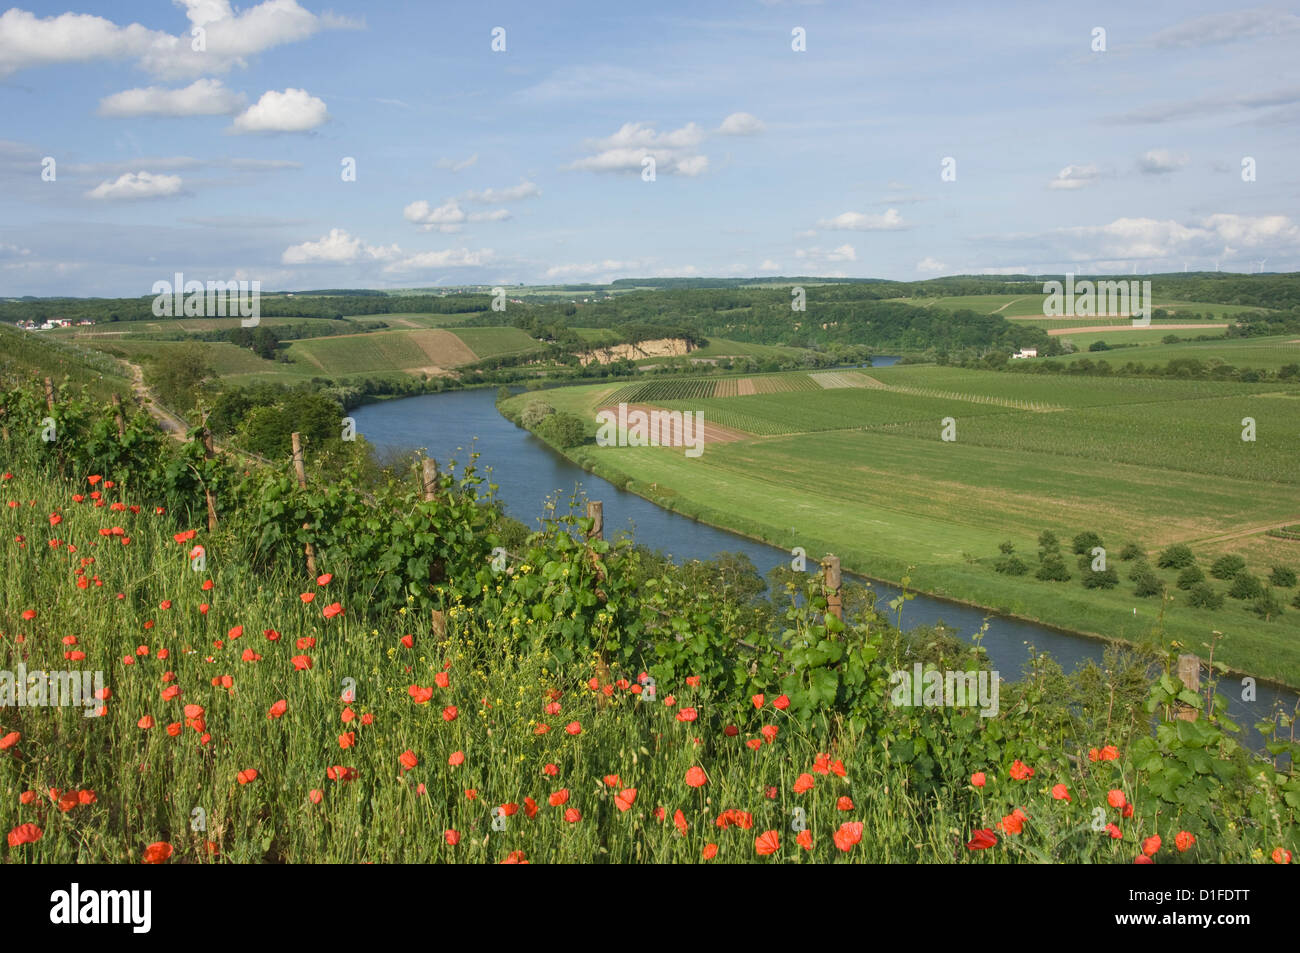 Poppies and vineyards along the border between Luxembourg and Germany separated by the River Moselle (Mosel), Germany, Stock Photo